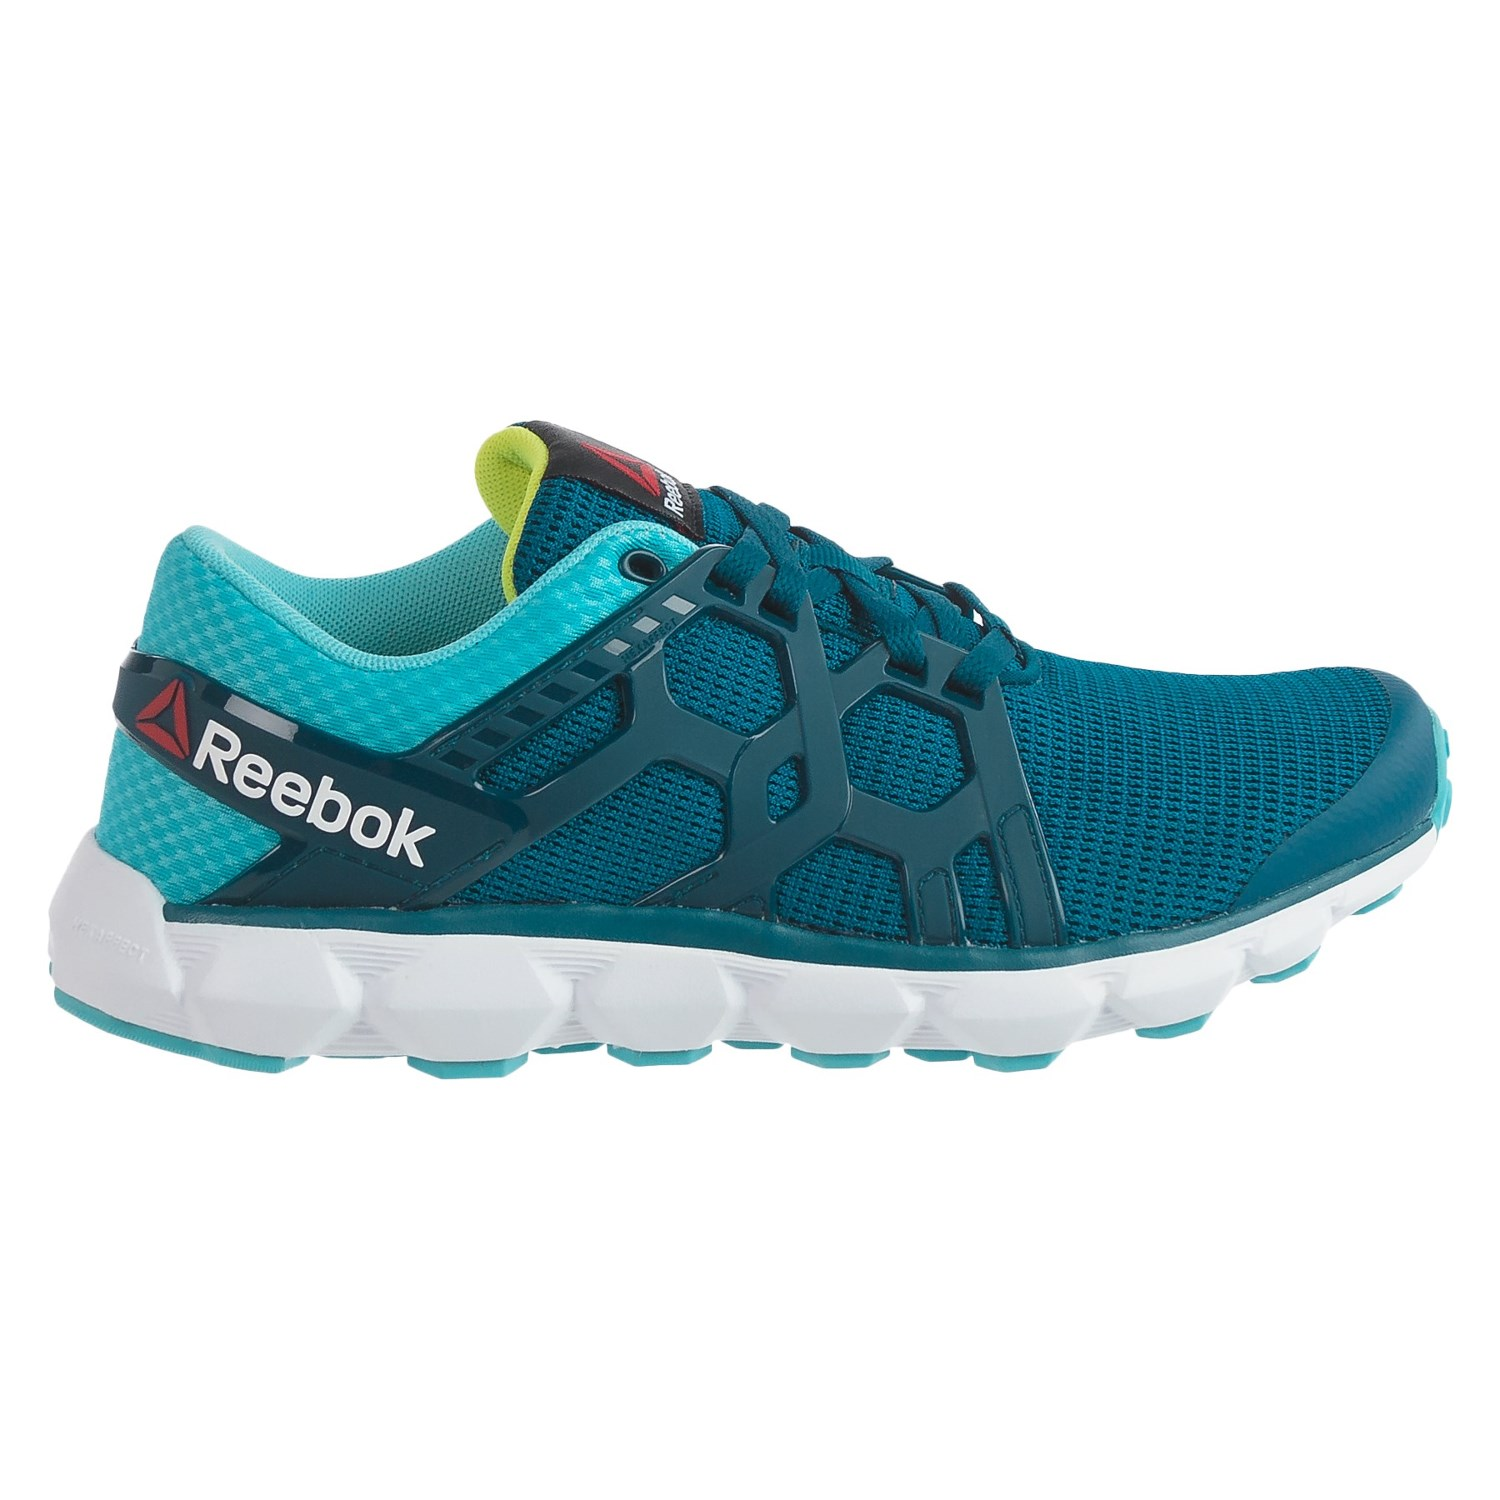 0ebf5017201be9 Buy rebook running shoes   OFF35% Discounted